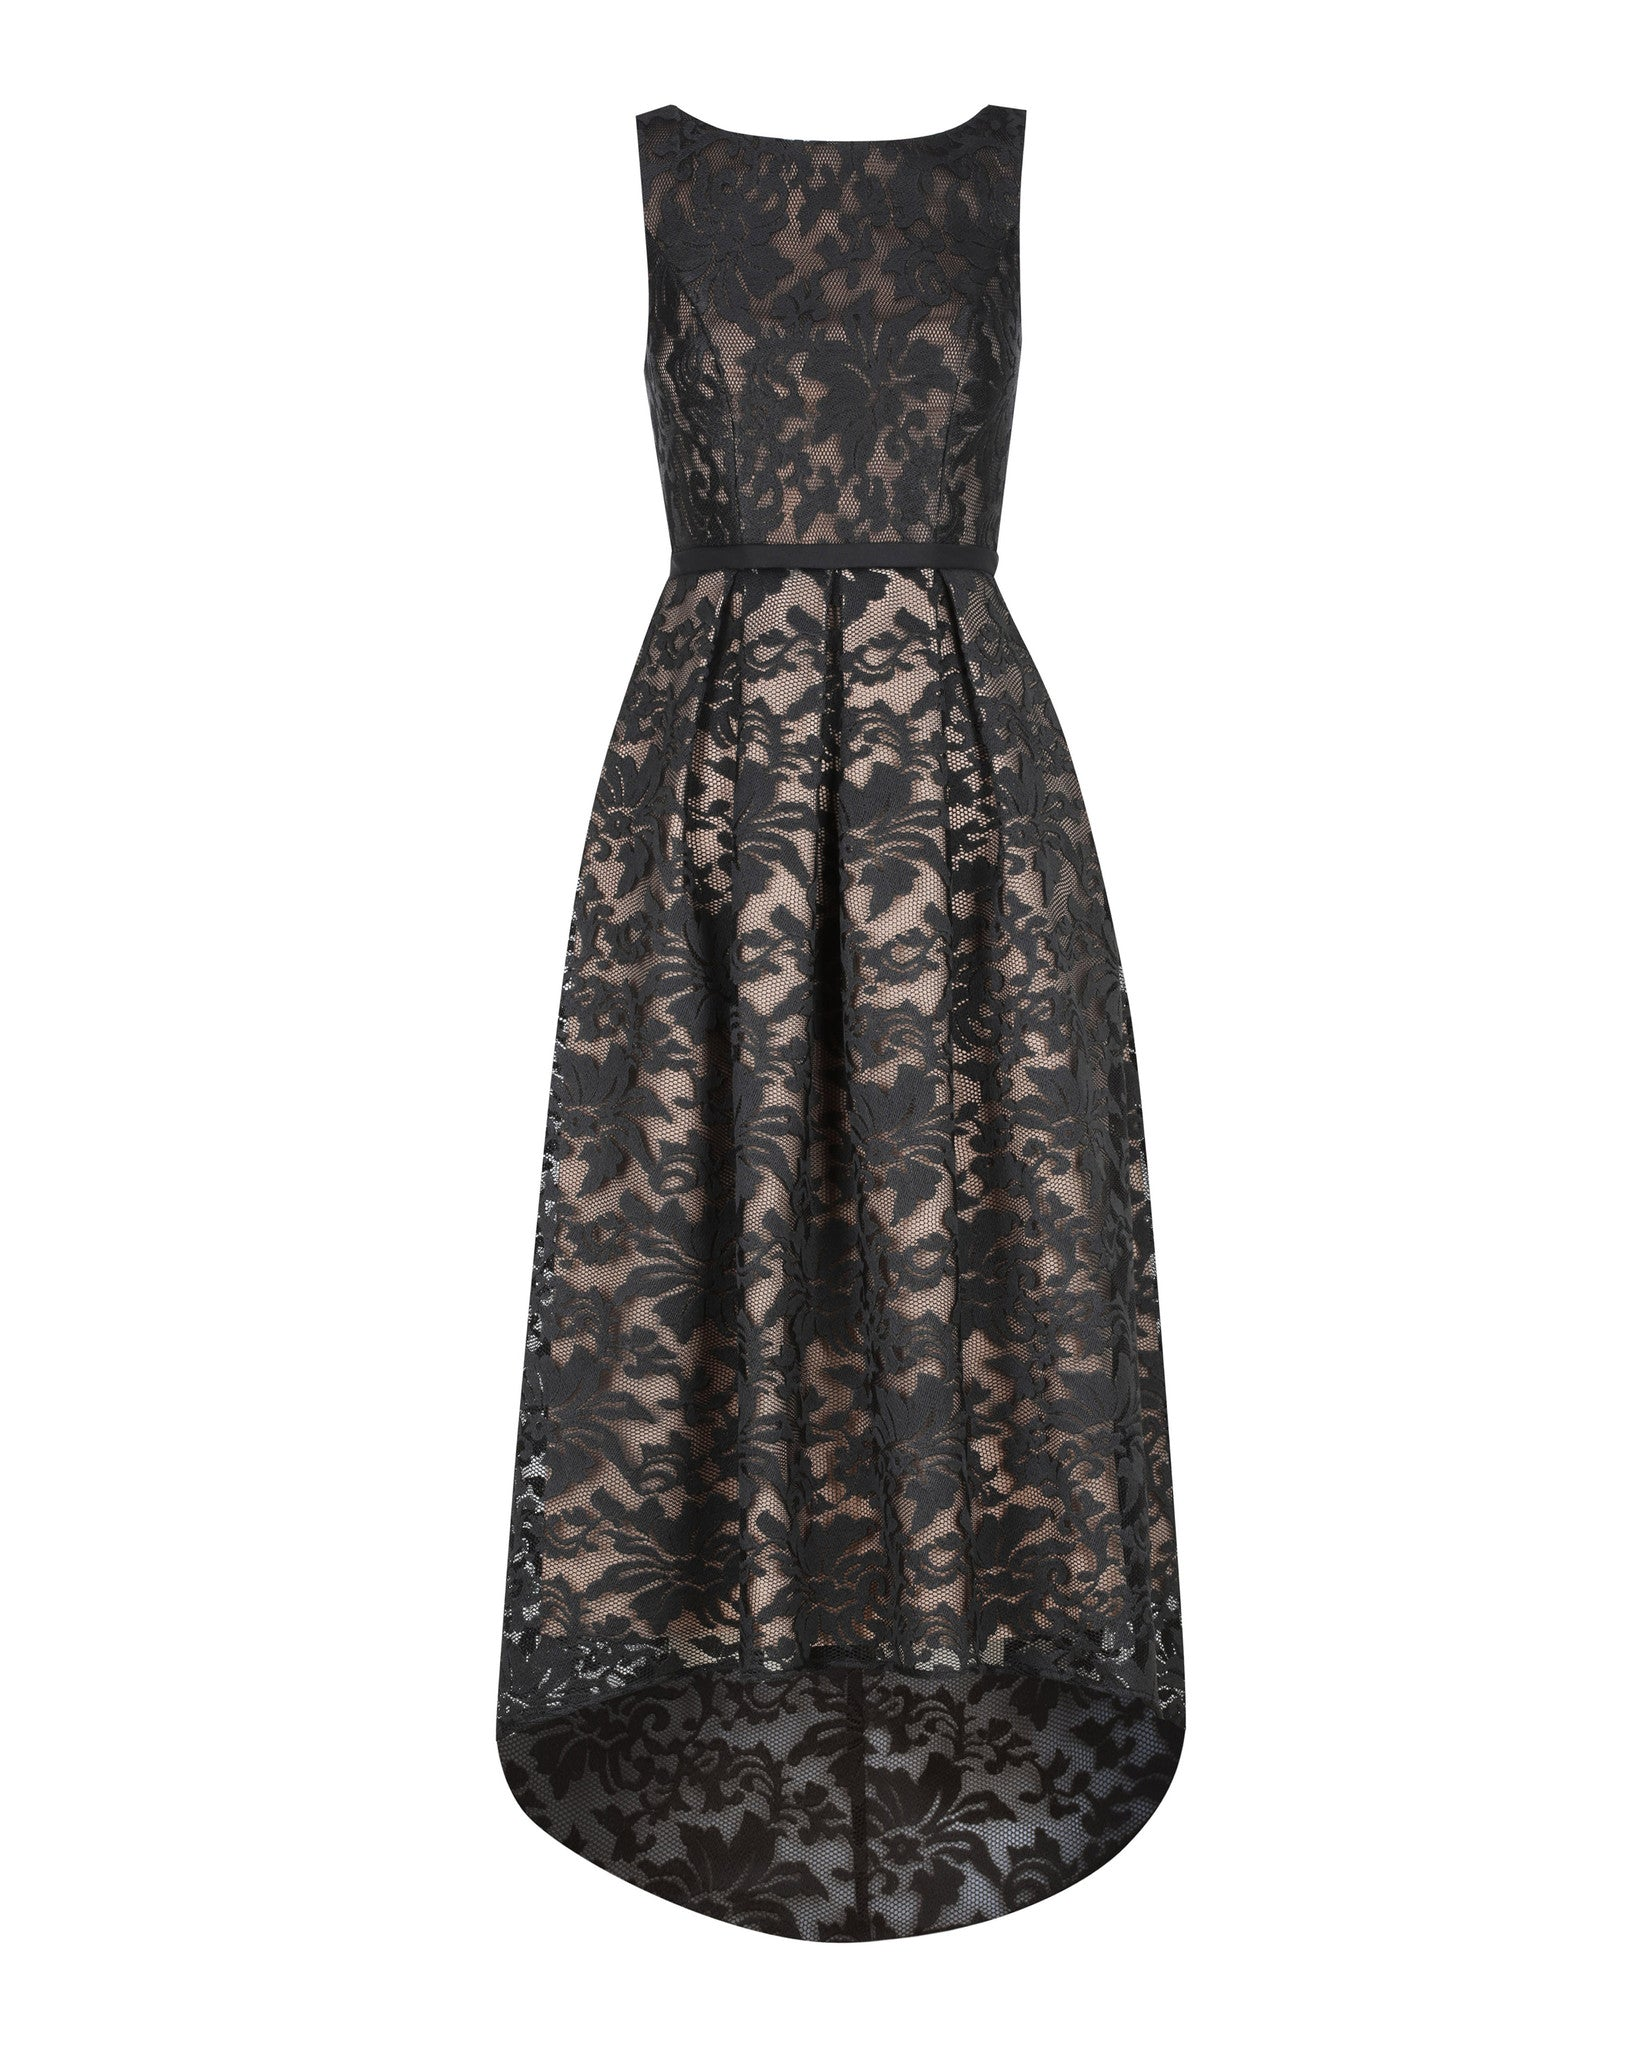 MARIANA DRESS- BLACK/NUDE